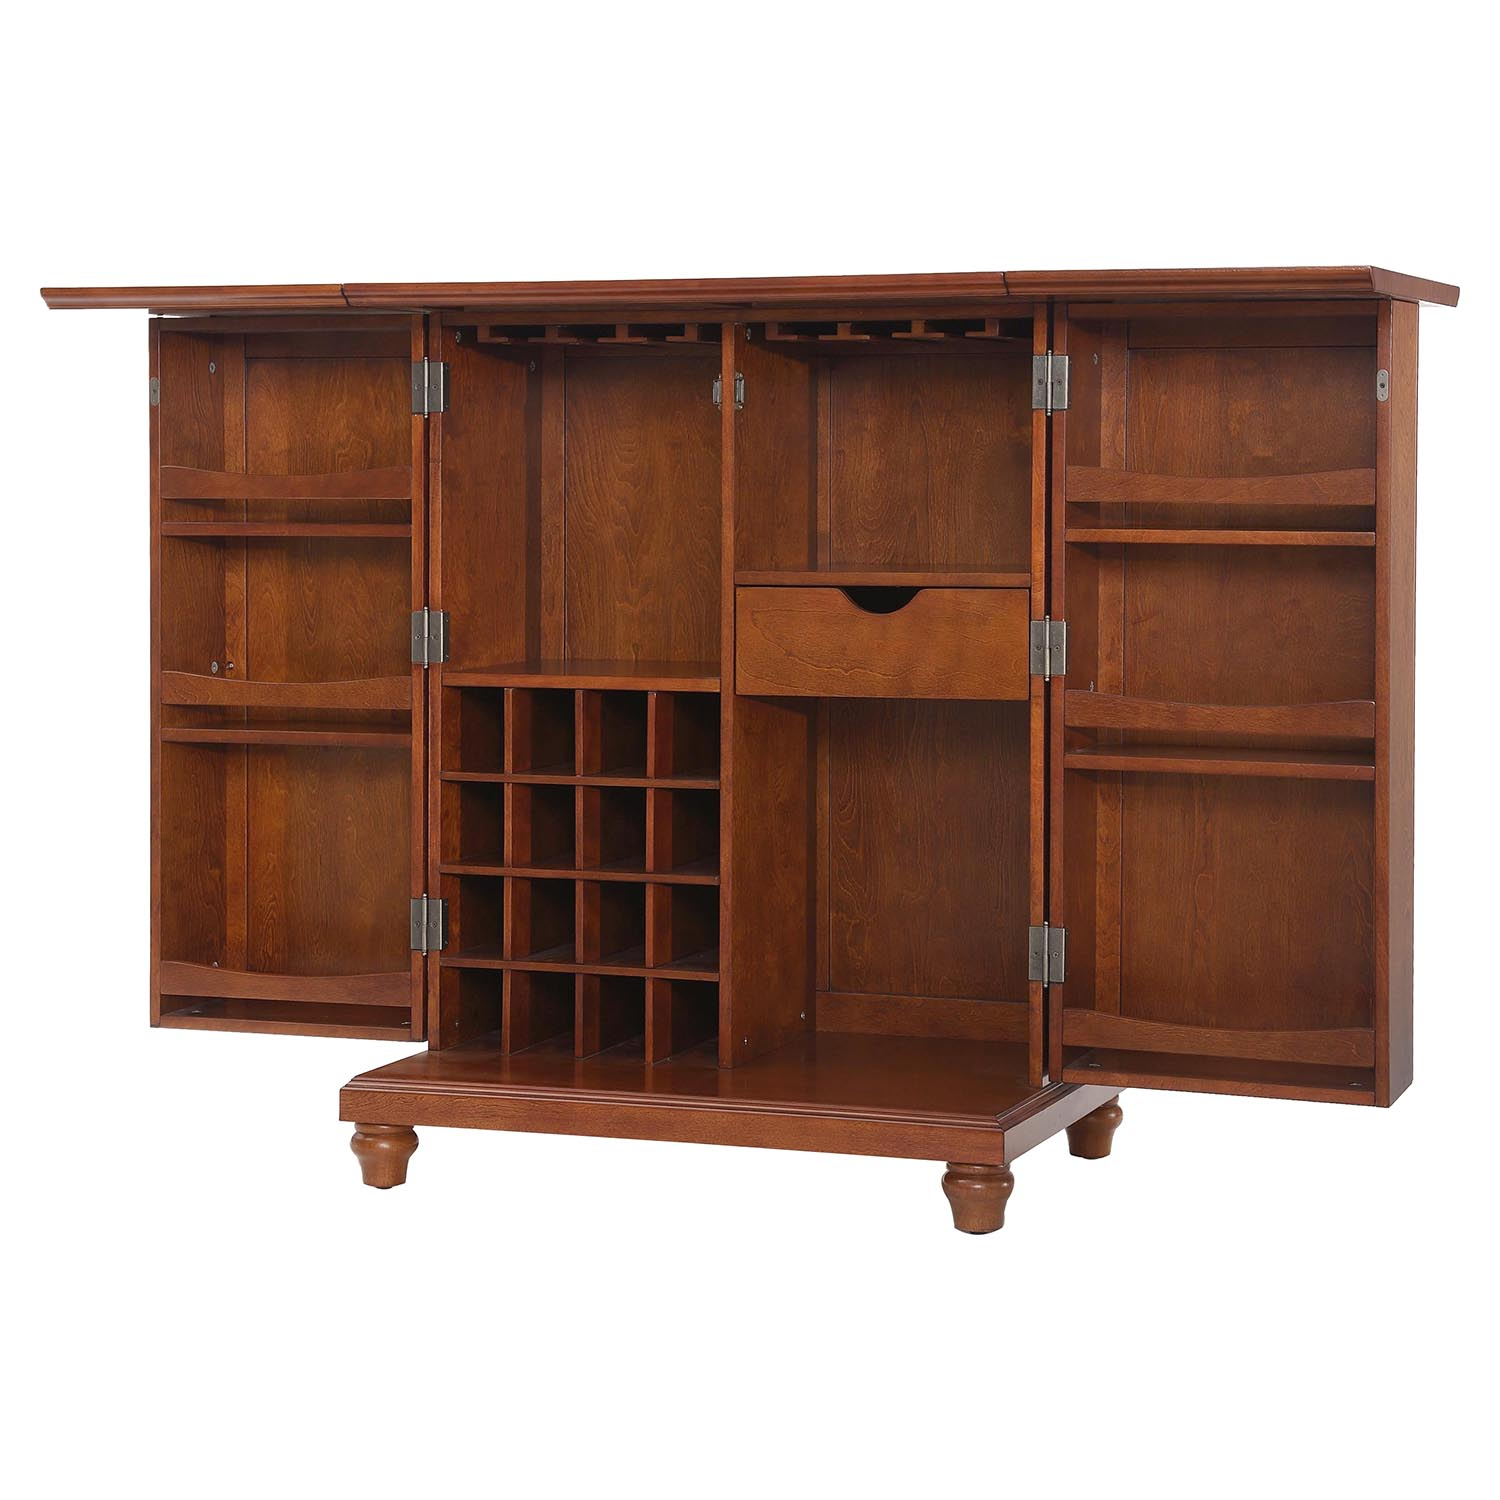 Cambridge Expandable Bar Cabinet - Classic Cherry - CROS-KF40001DCH